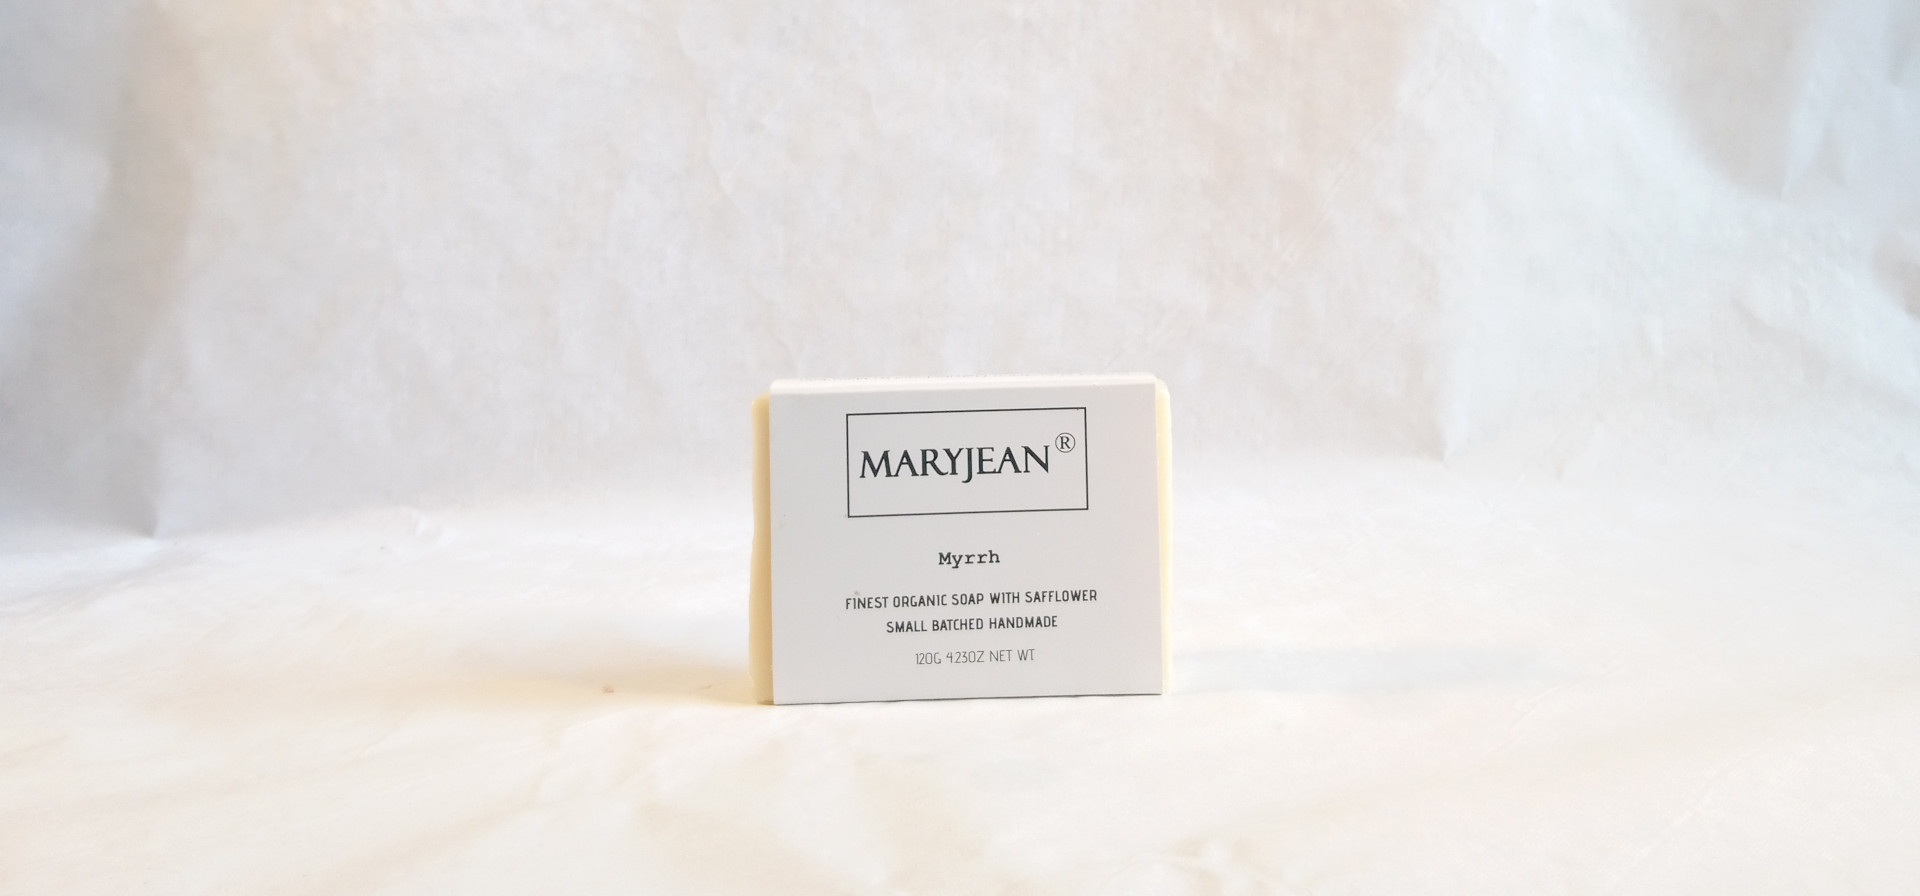 Twin Pack 2 Organic Scottish Myrrh Plastic And Sulphate Free Soaps Handmade With Safflower en_GB